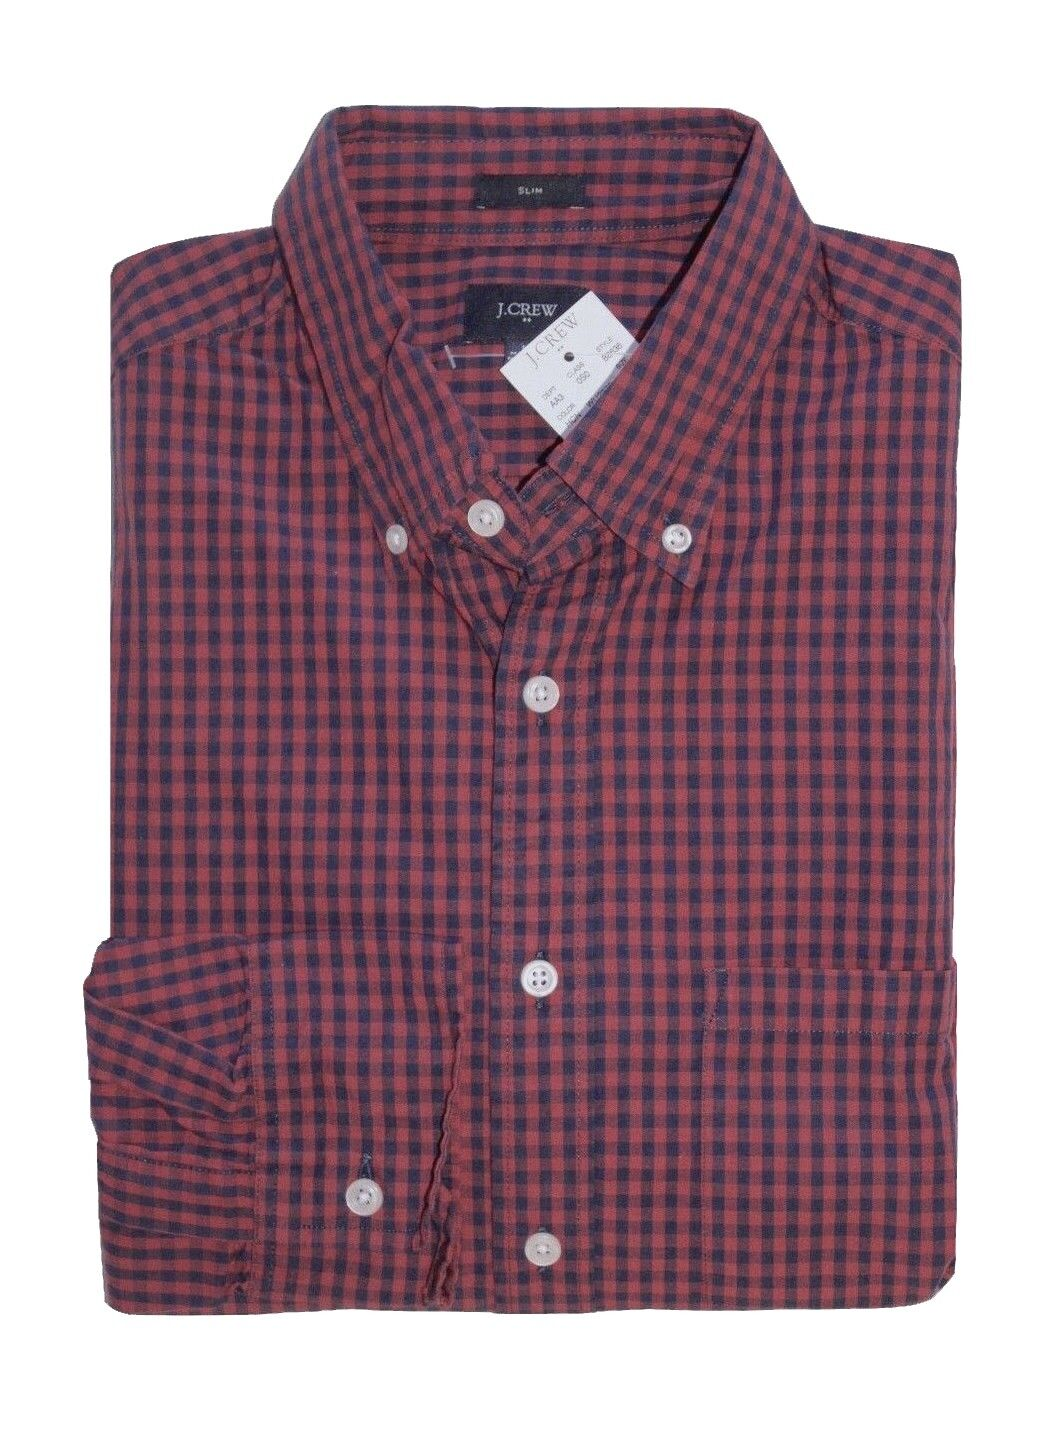 J Crew Factory - Mens S - Slim Fit - Red Navy Micro-Gingham Plaid Washed Shirt